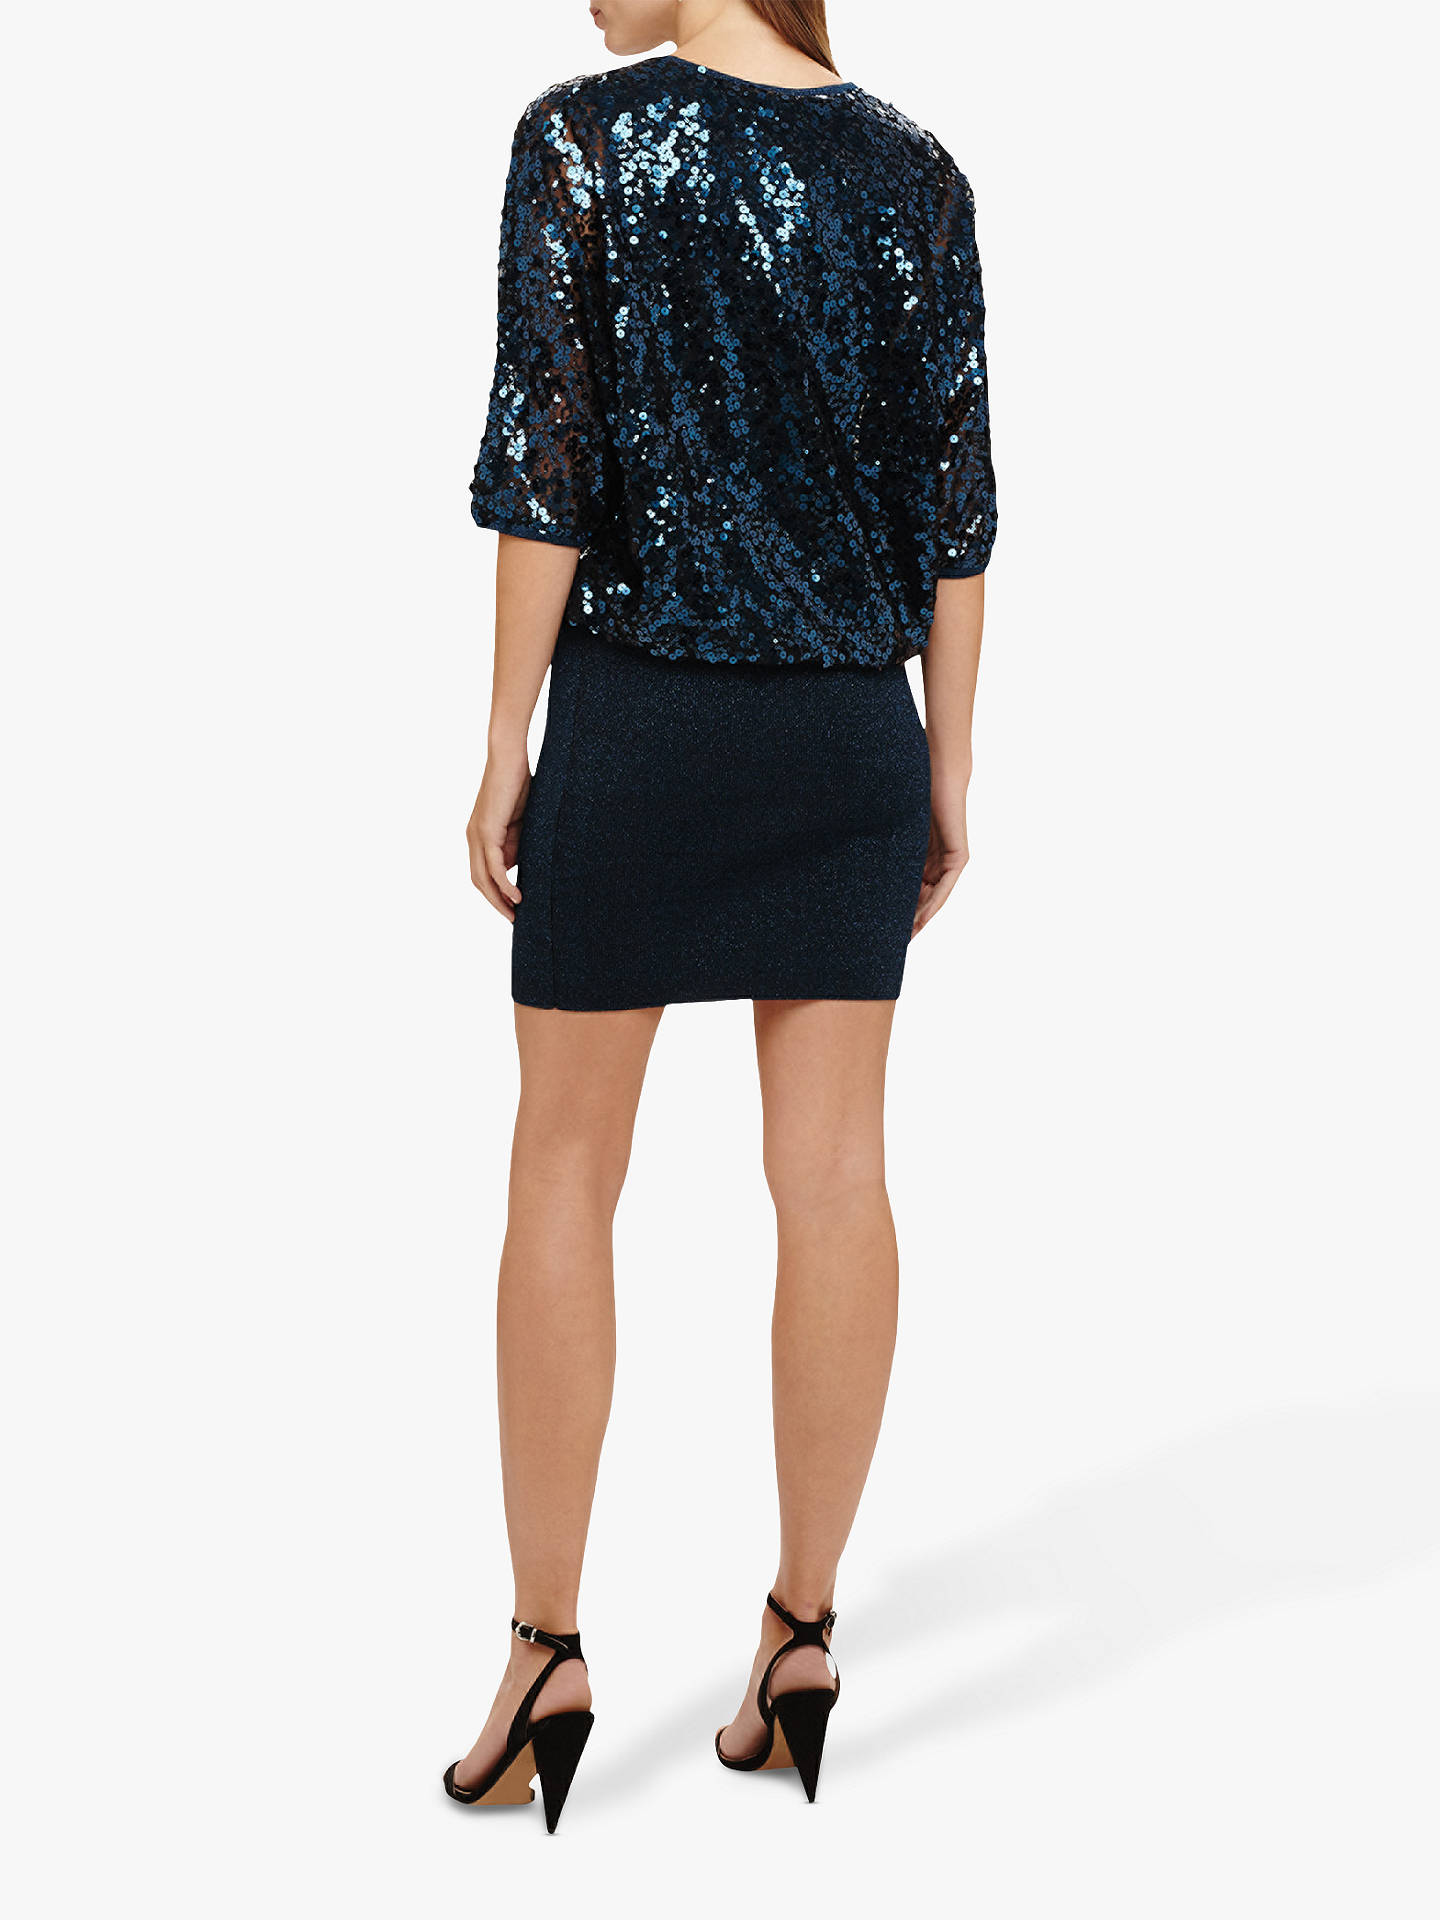 79dbc10a ... Buy Phase Eight Becca Sequin Bodice Dress, Petrol, 8 Online at  johnlewis.com ...